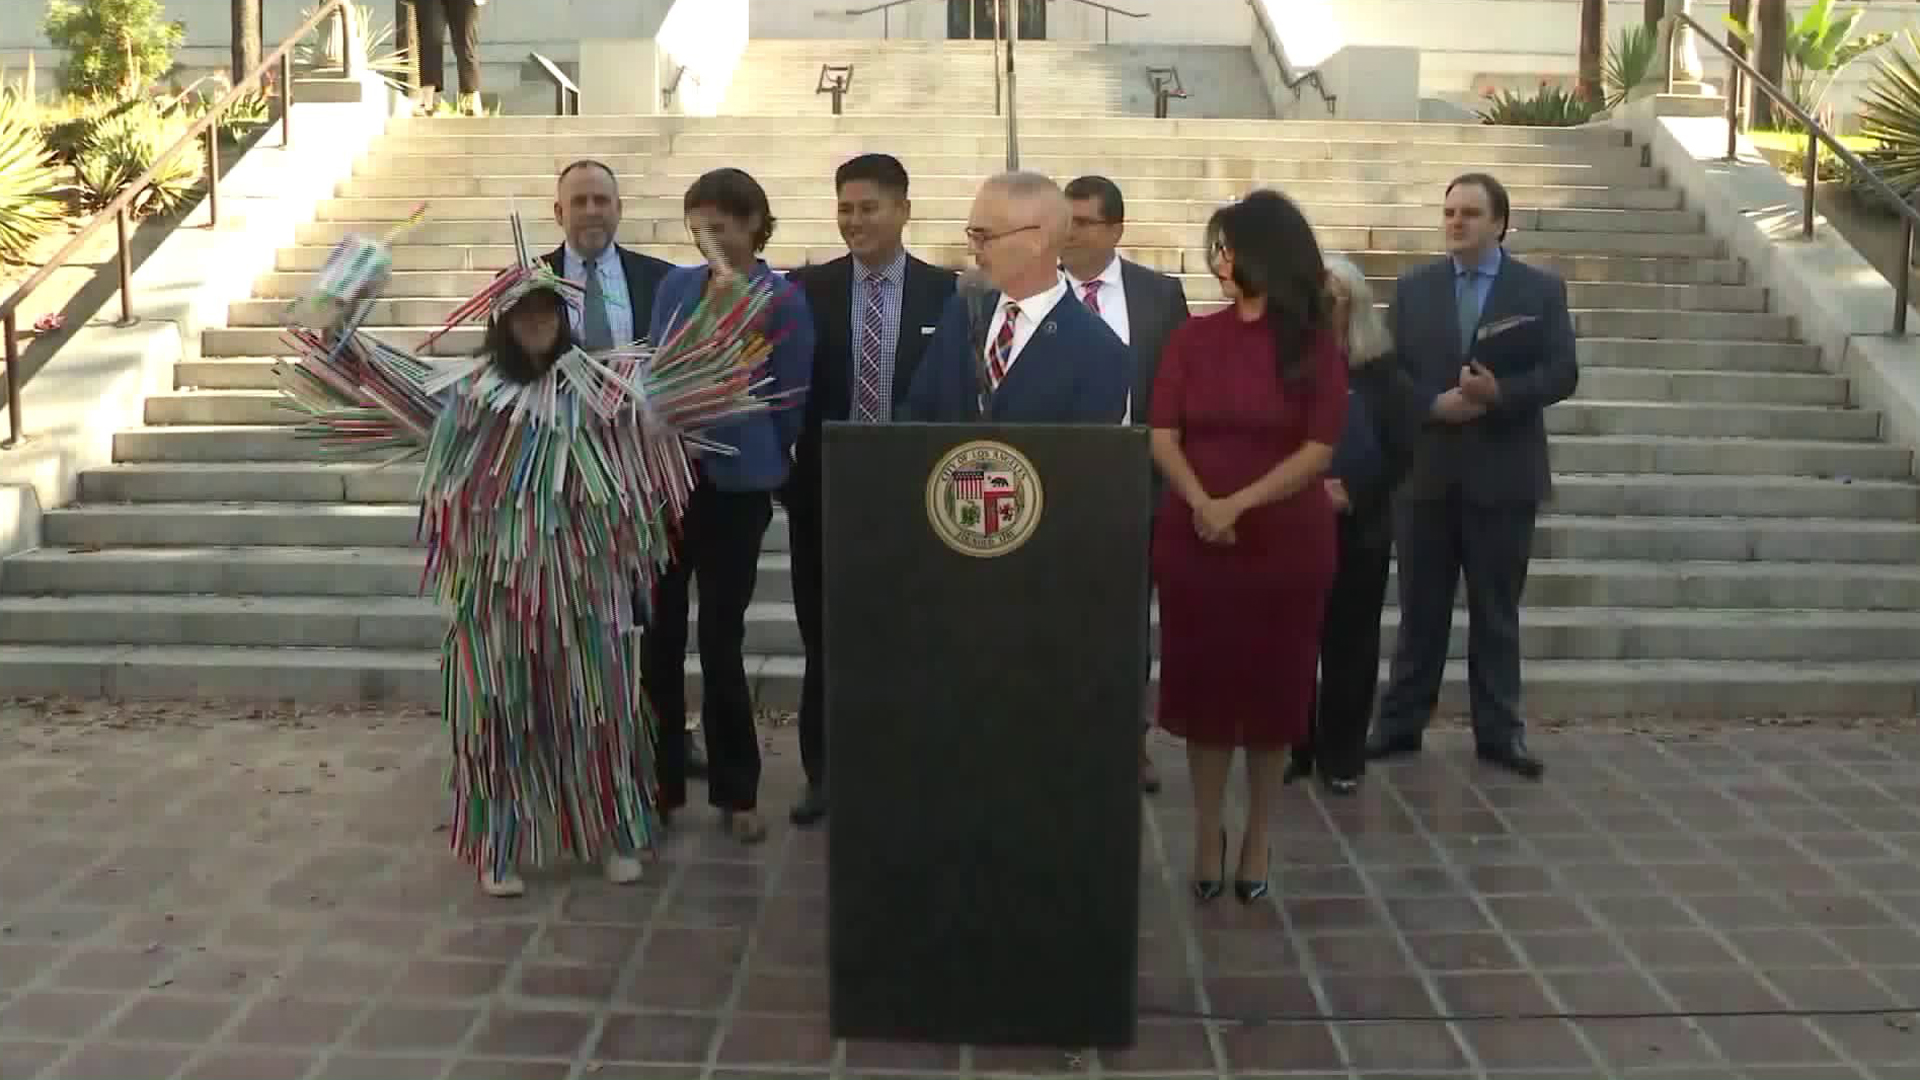 Los Angeles city council members Mitch O'Farrell and Nury Martinez host a press conference on their initiative to banish plastic drinking straws from the city by 2021. (Credit: Office of Councilman Mitch O'Farrell)